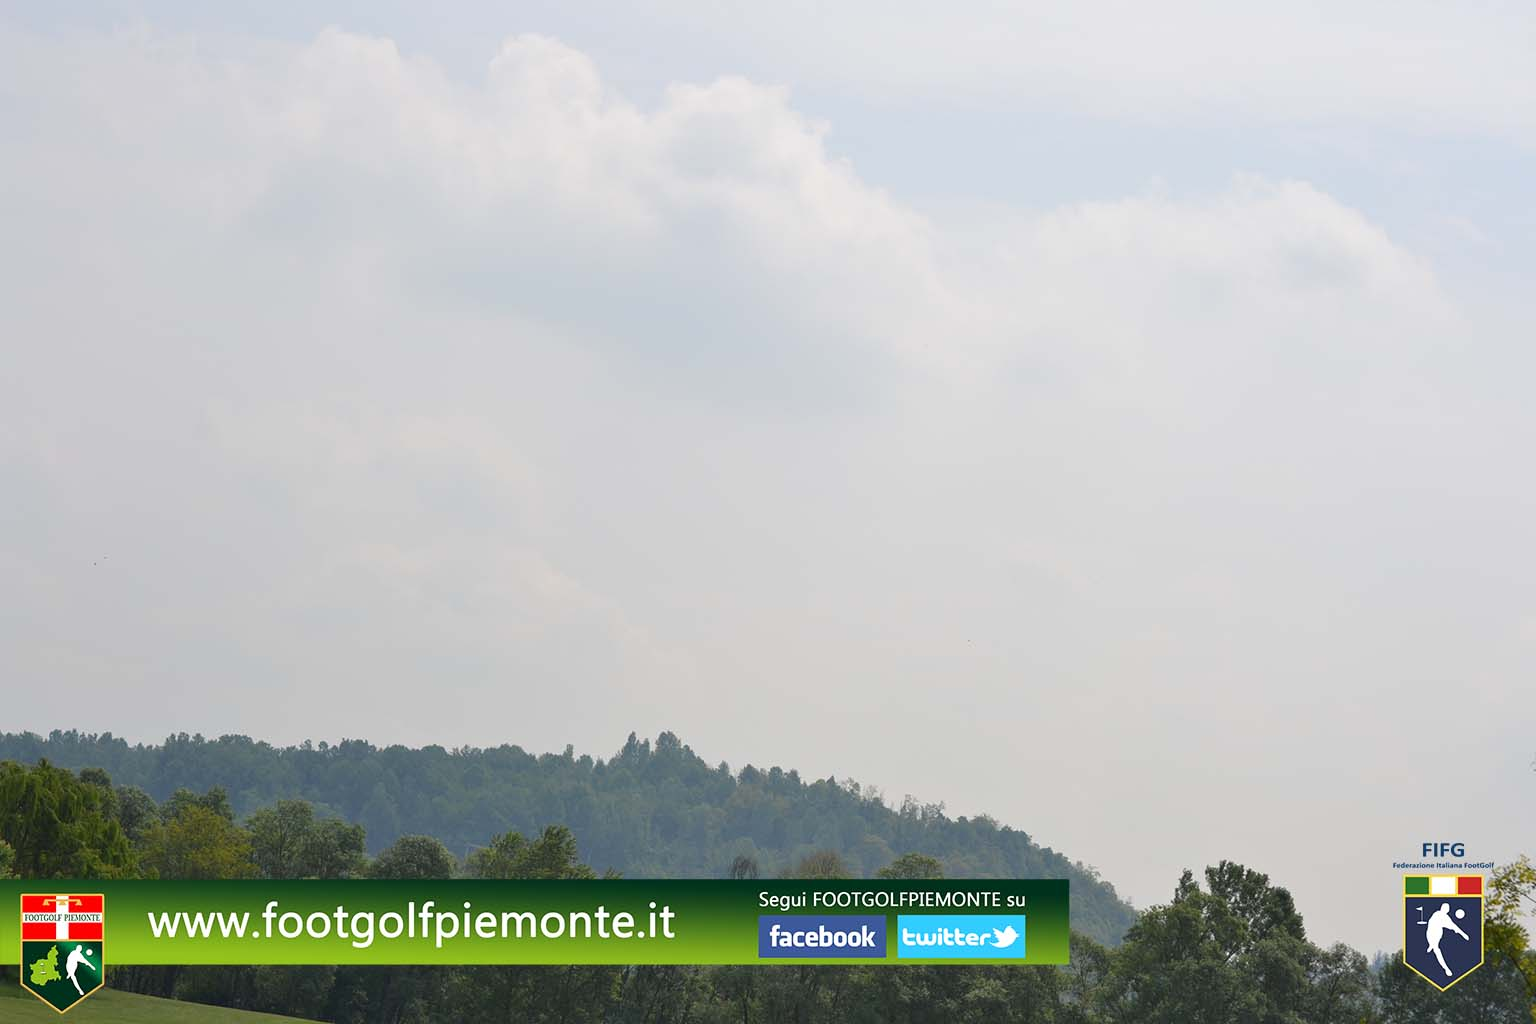 FOTO 9 Regions' Cup Footgolf Piemonte 2016 Golf Città di Asti (At) 30apr16-19